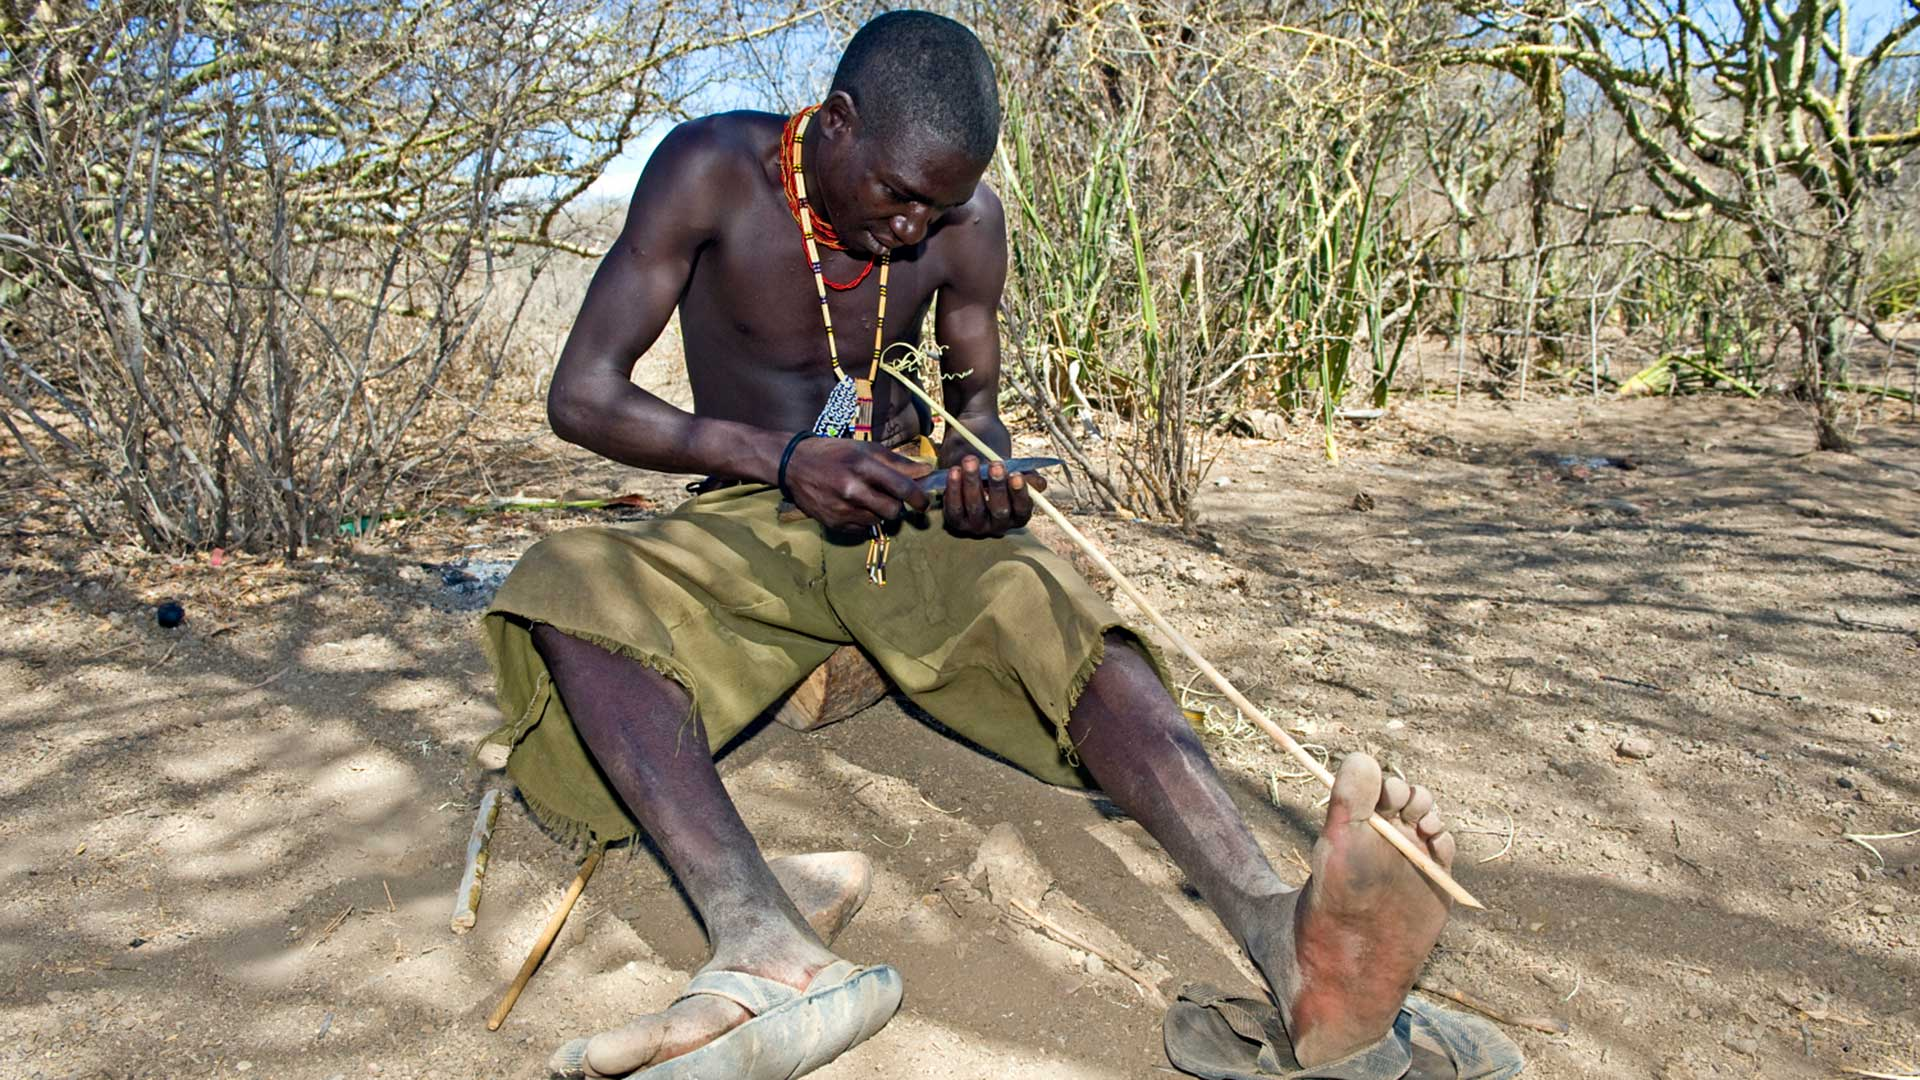 A member of the Hadza tribe, some of the last hunter-gatherers in Africa.